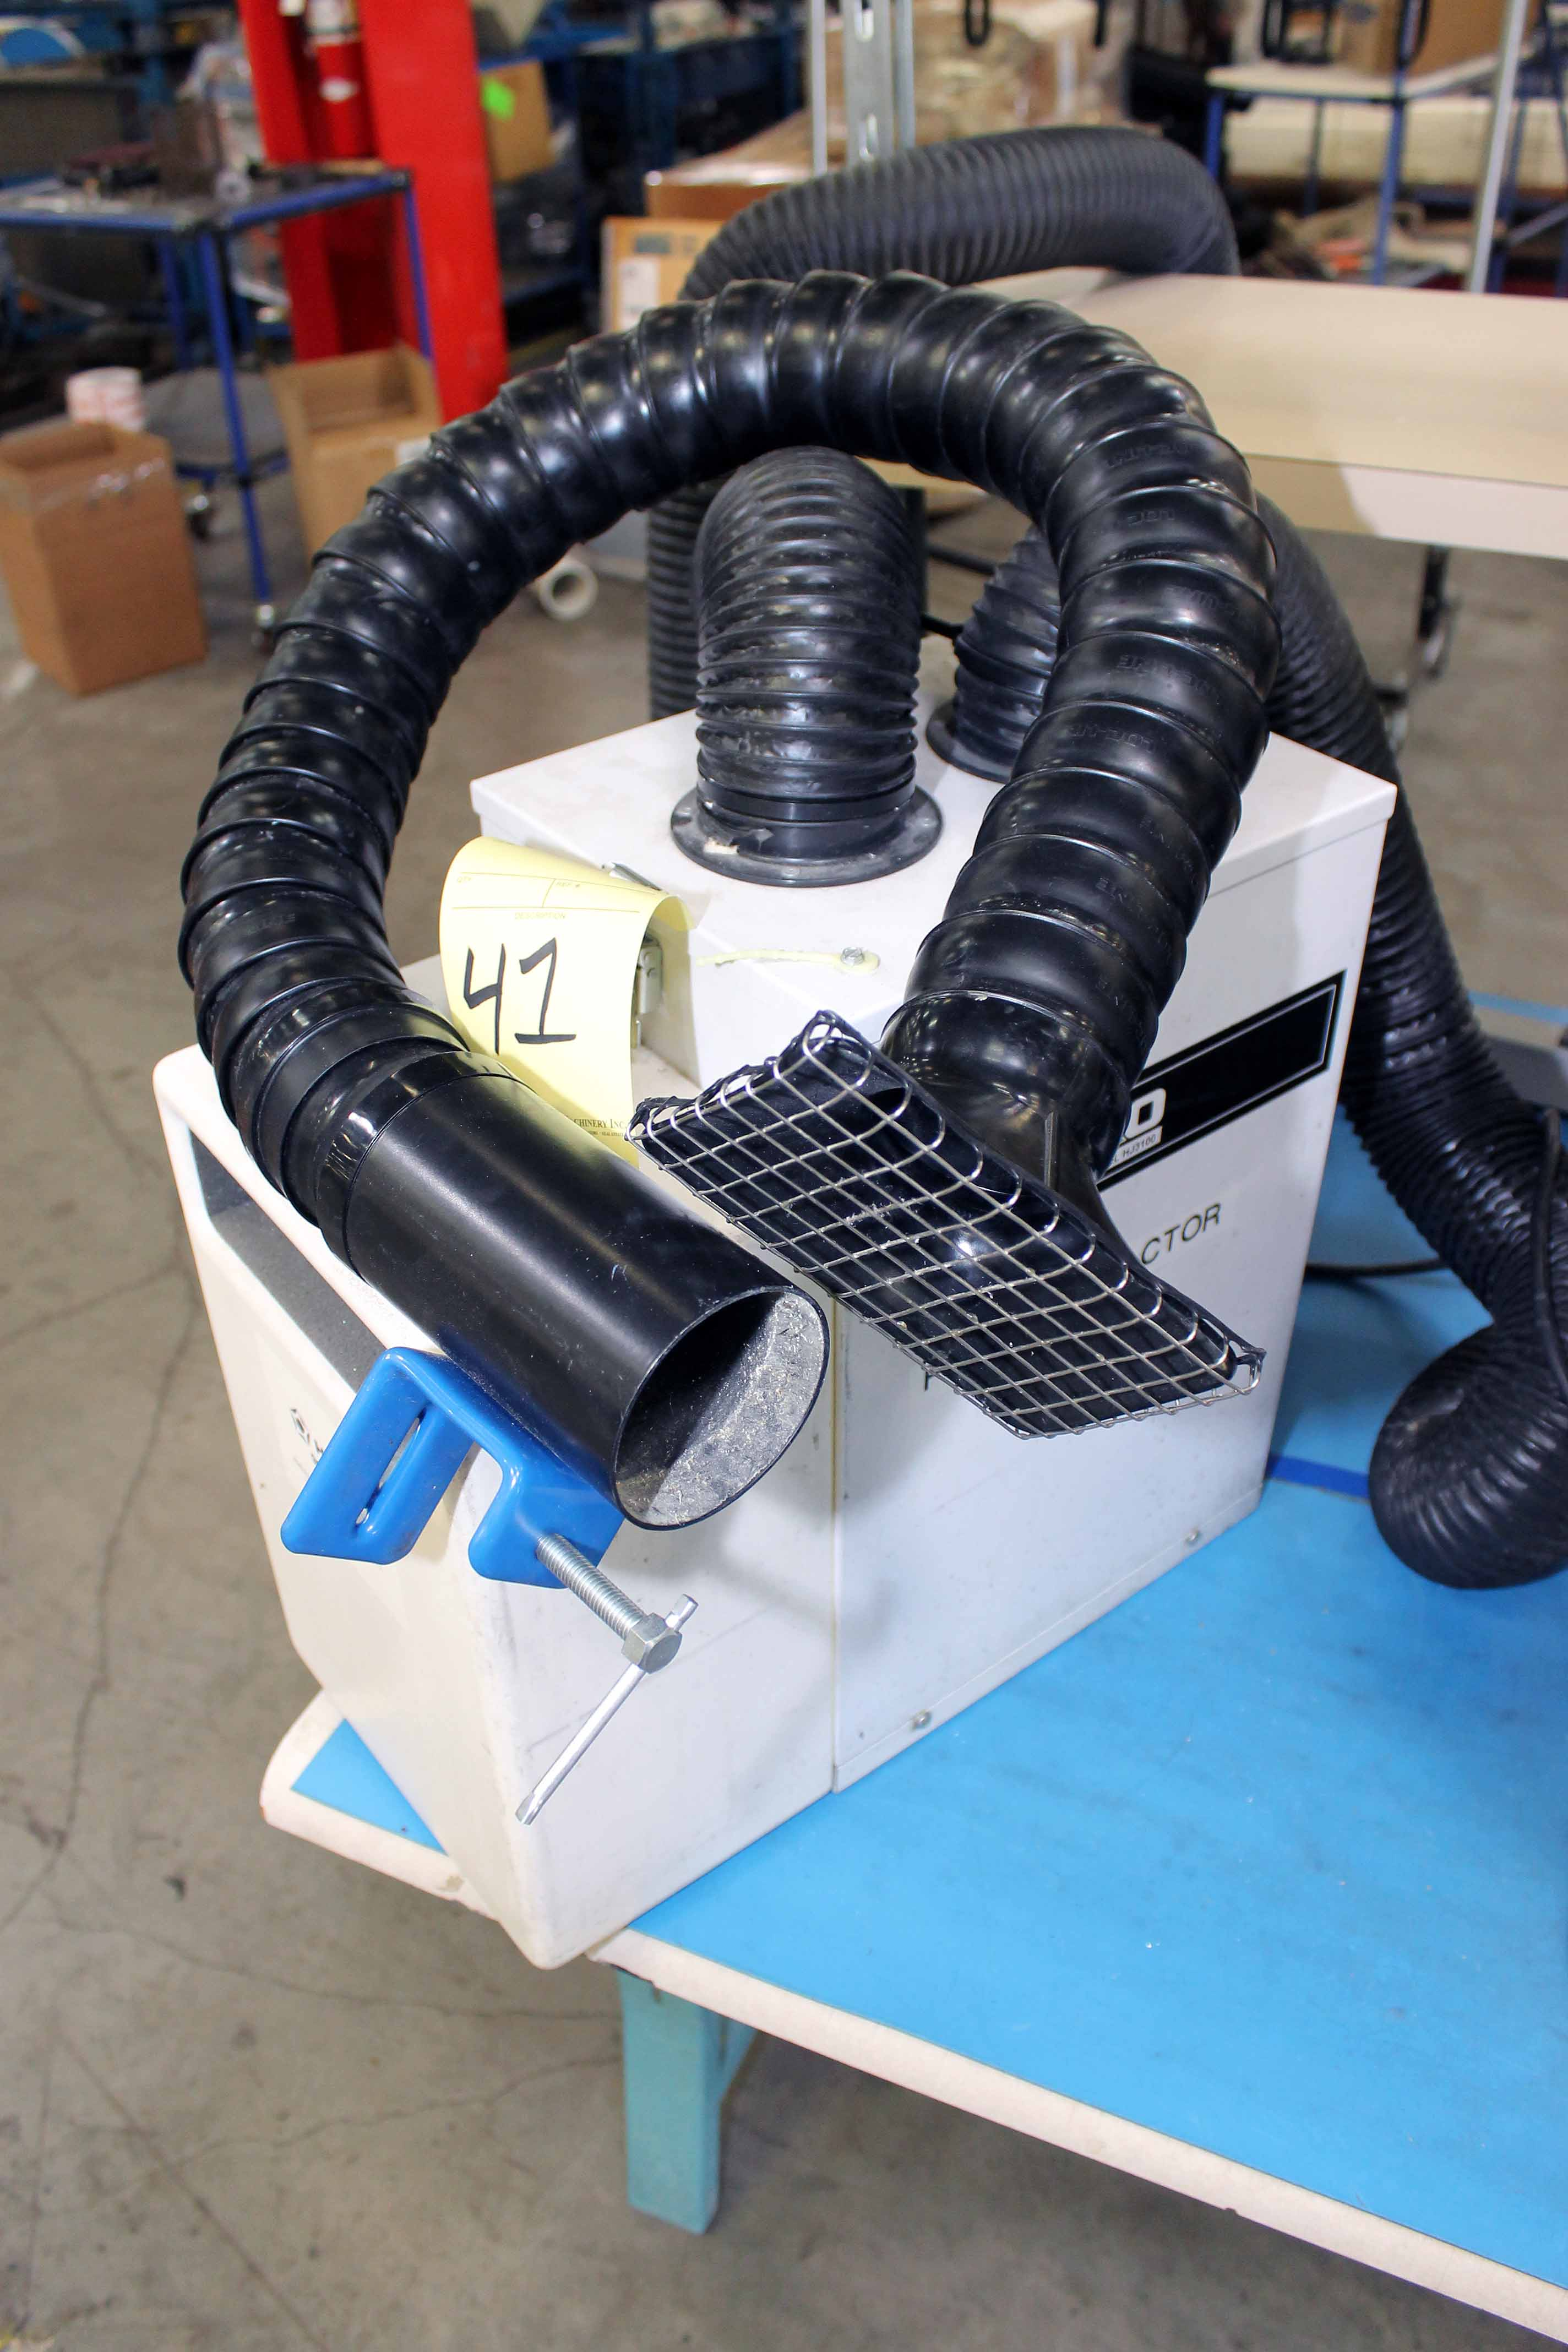 Lot 41 - FUME EXTRACTOR, HAKO MDL. HJ3100 (Location 1 - Techway)